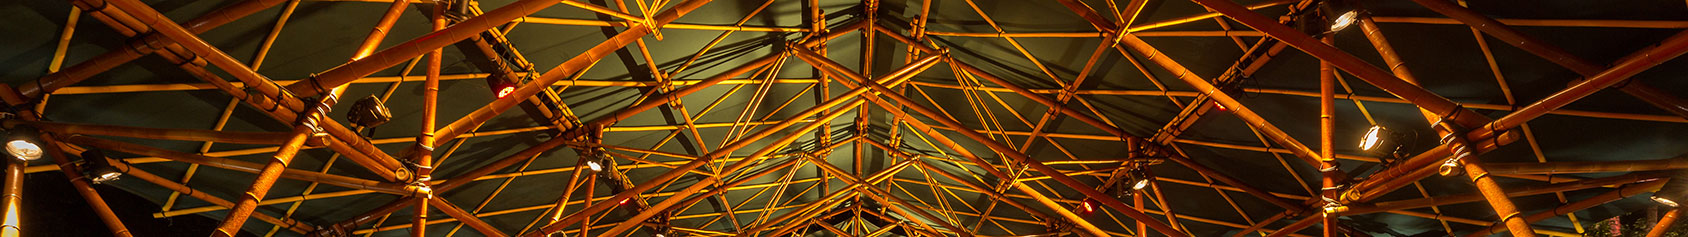 Deployable-bamboo-structure-pavilion-ArchDaily.jpg